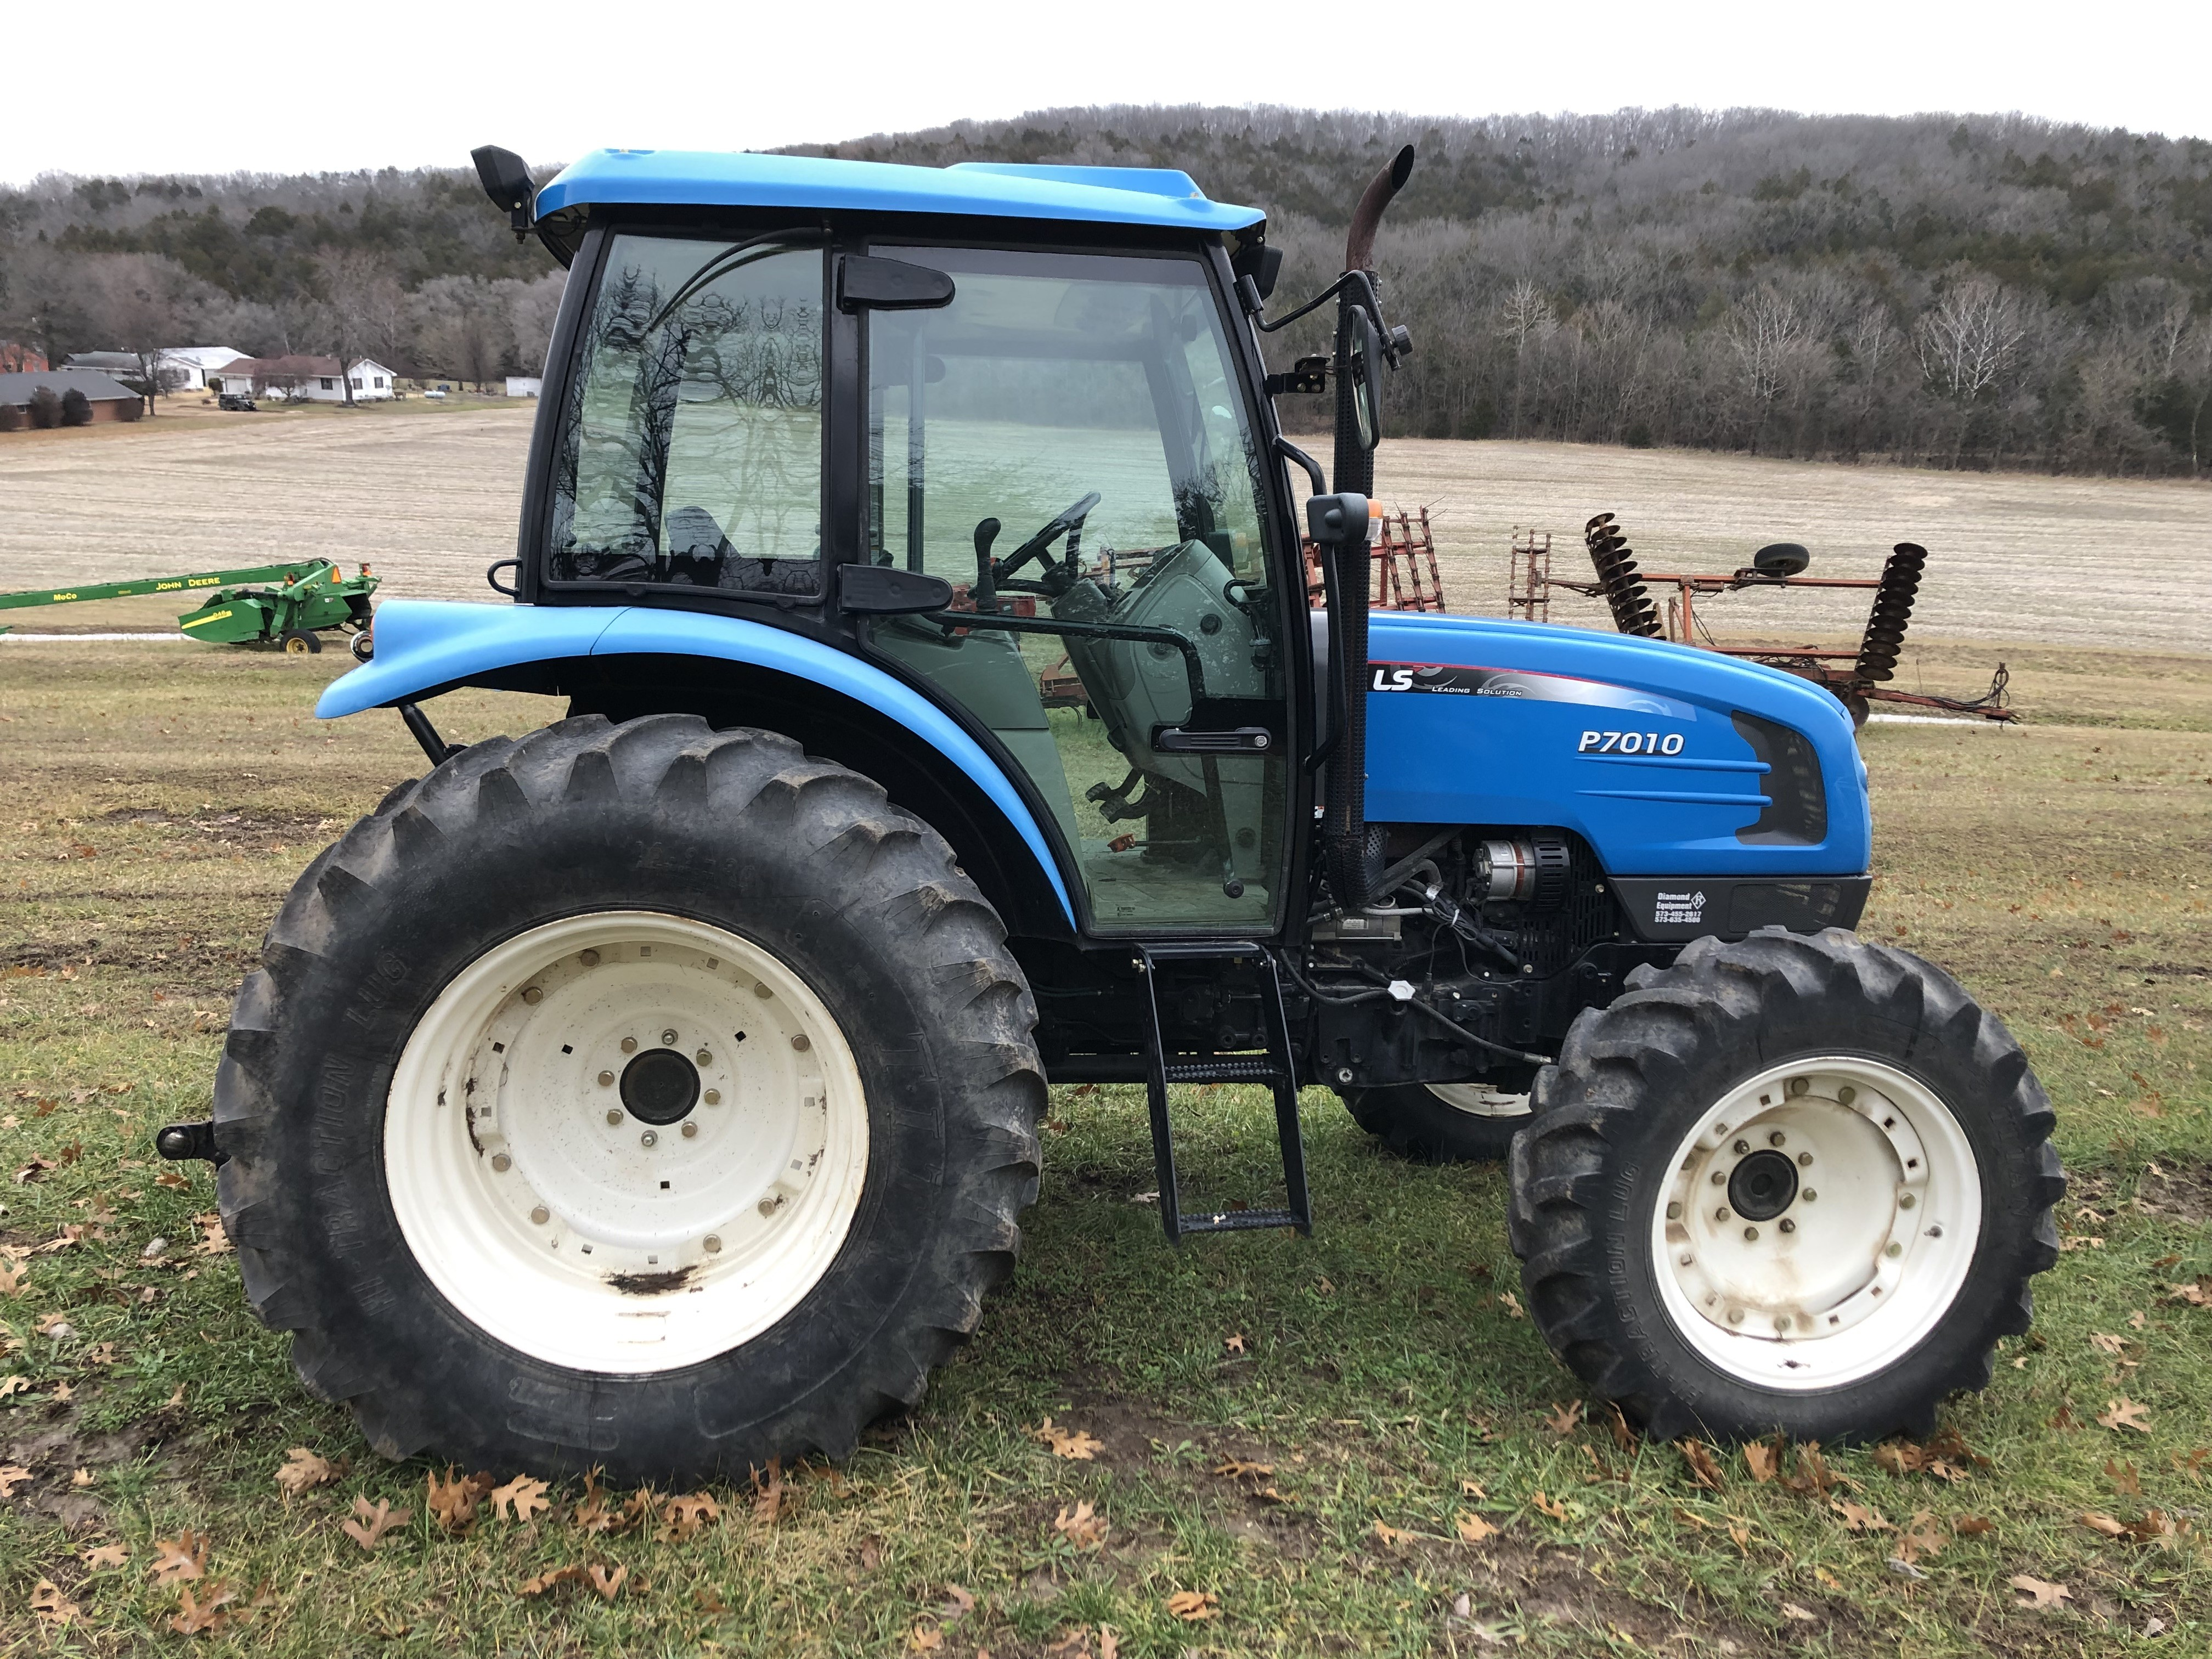 Used 2015 LS Tractor P7010 in Mount Sterling, MO